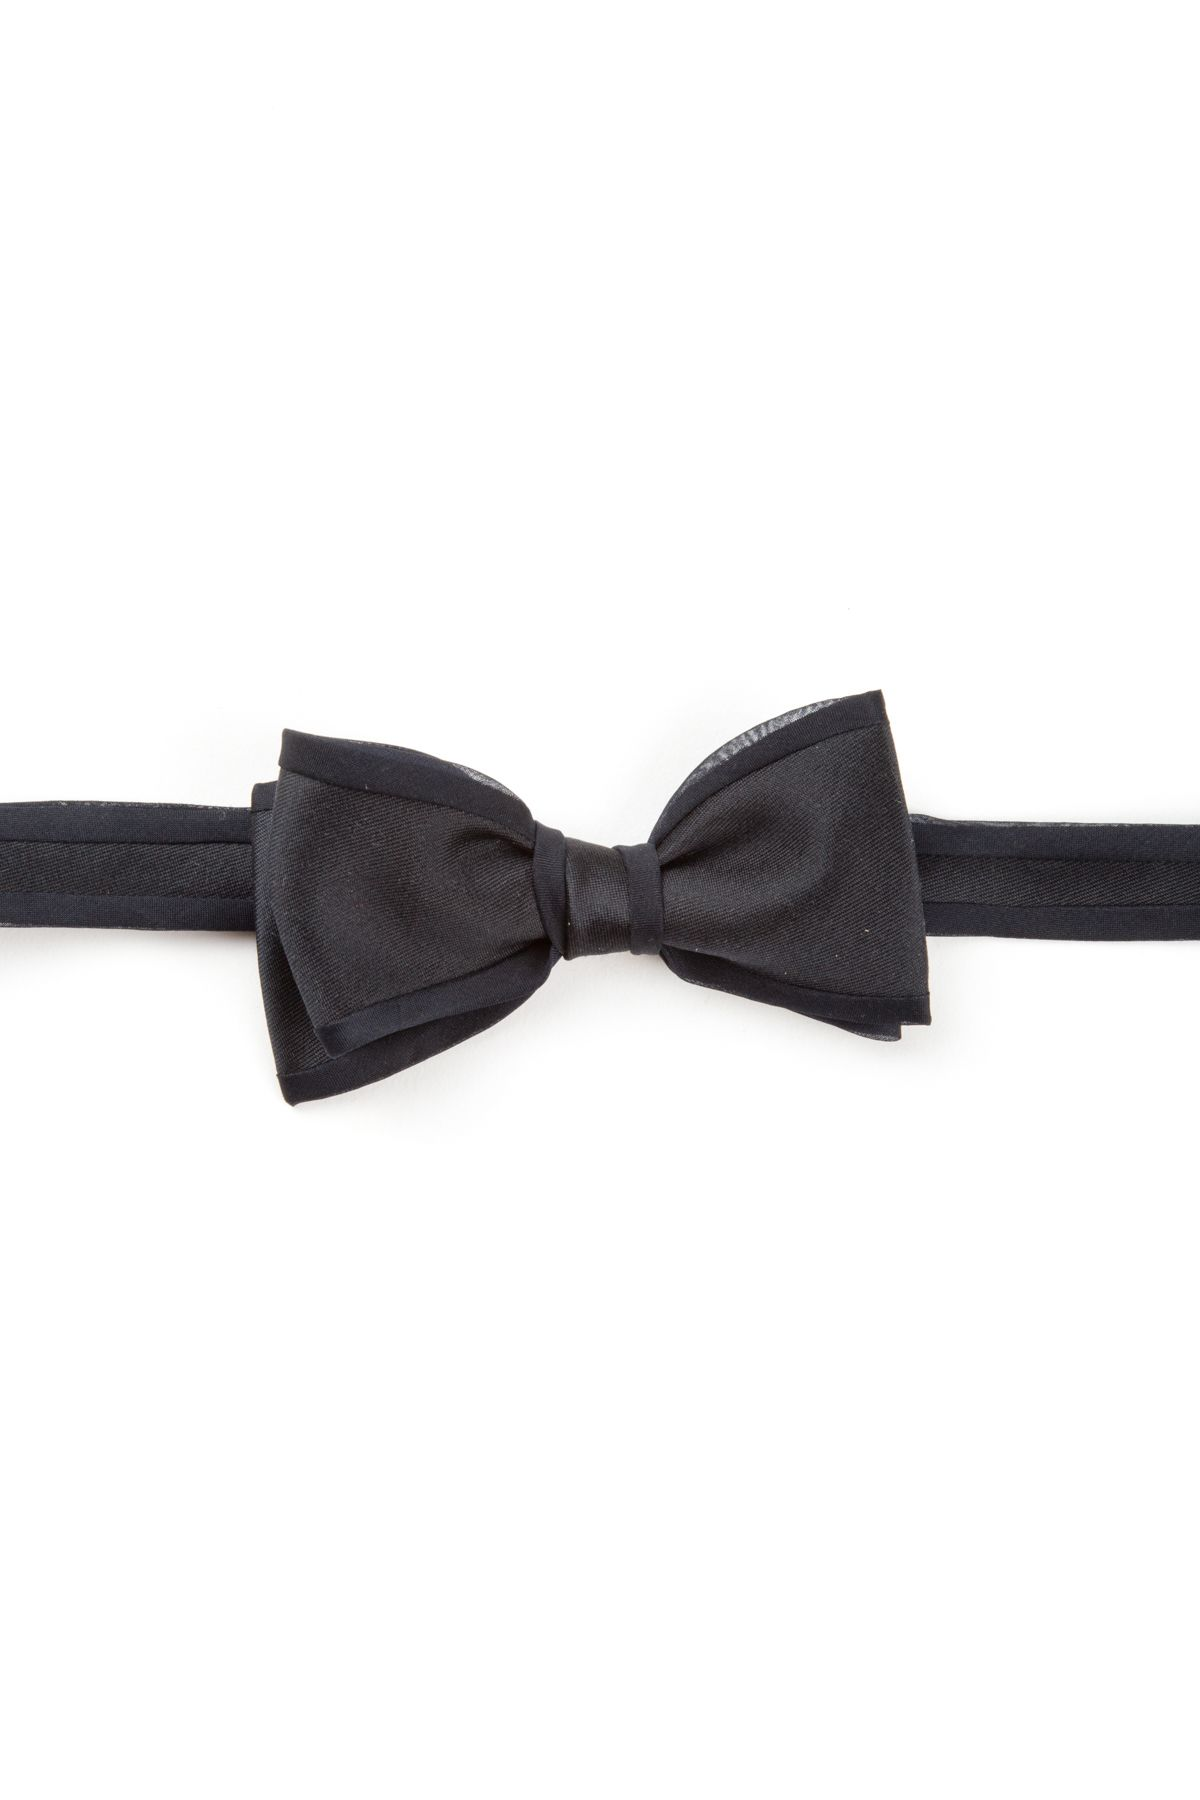 Title of Work Bow Tie